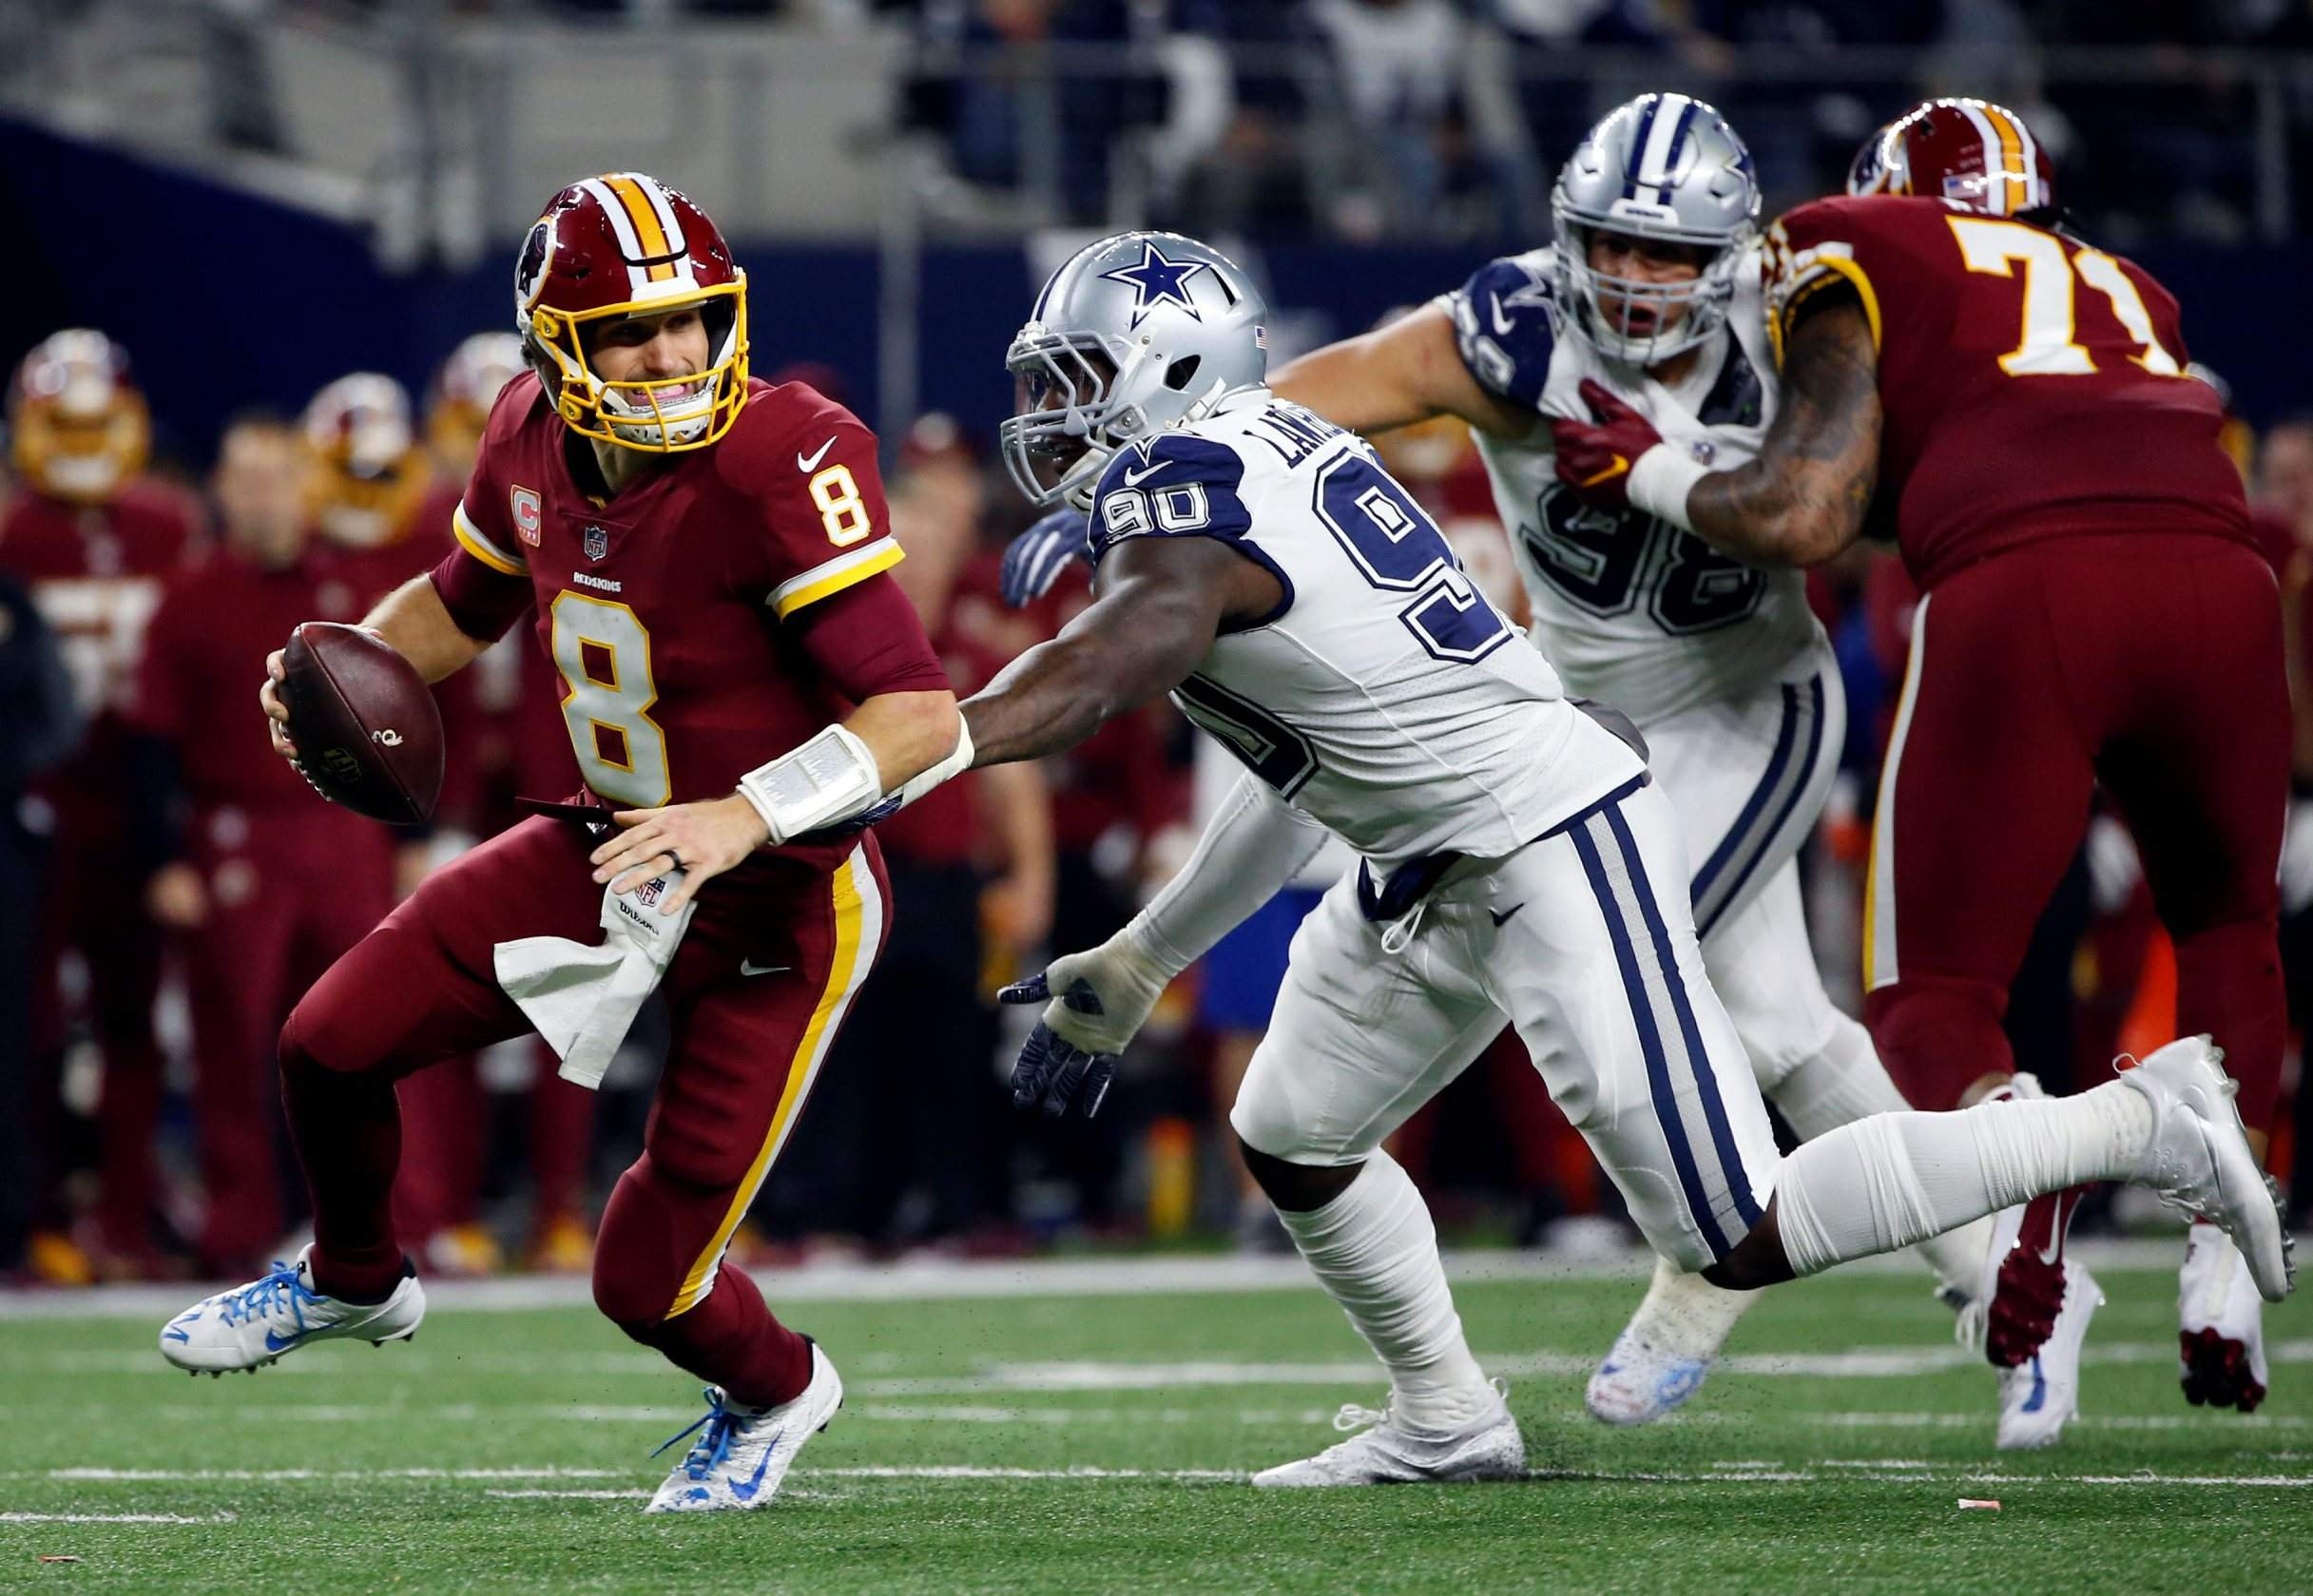 956ea3d53b1 Washington Redskins quarterback Kirk Cousins (8) scrambles out of the  pocket escaping pressure from Dallas Cowboys defensive end DeMarcus  Lawrence Thursday ...